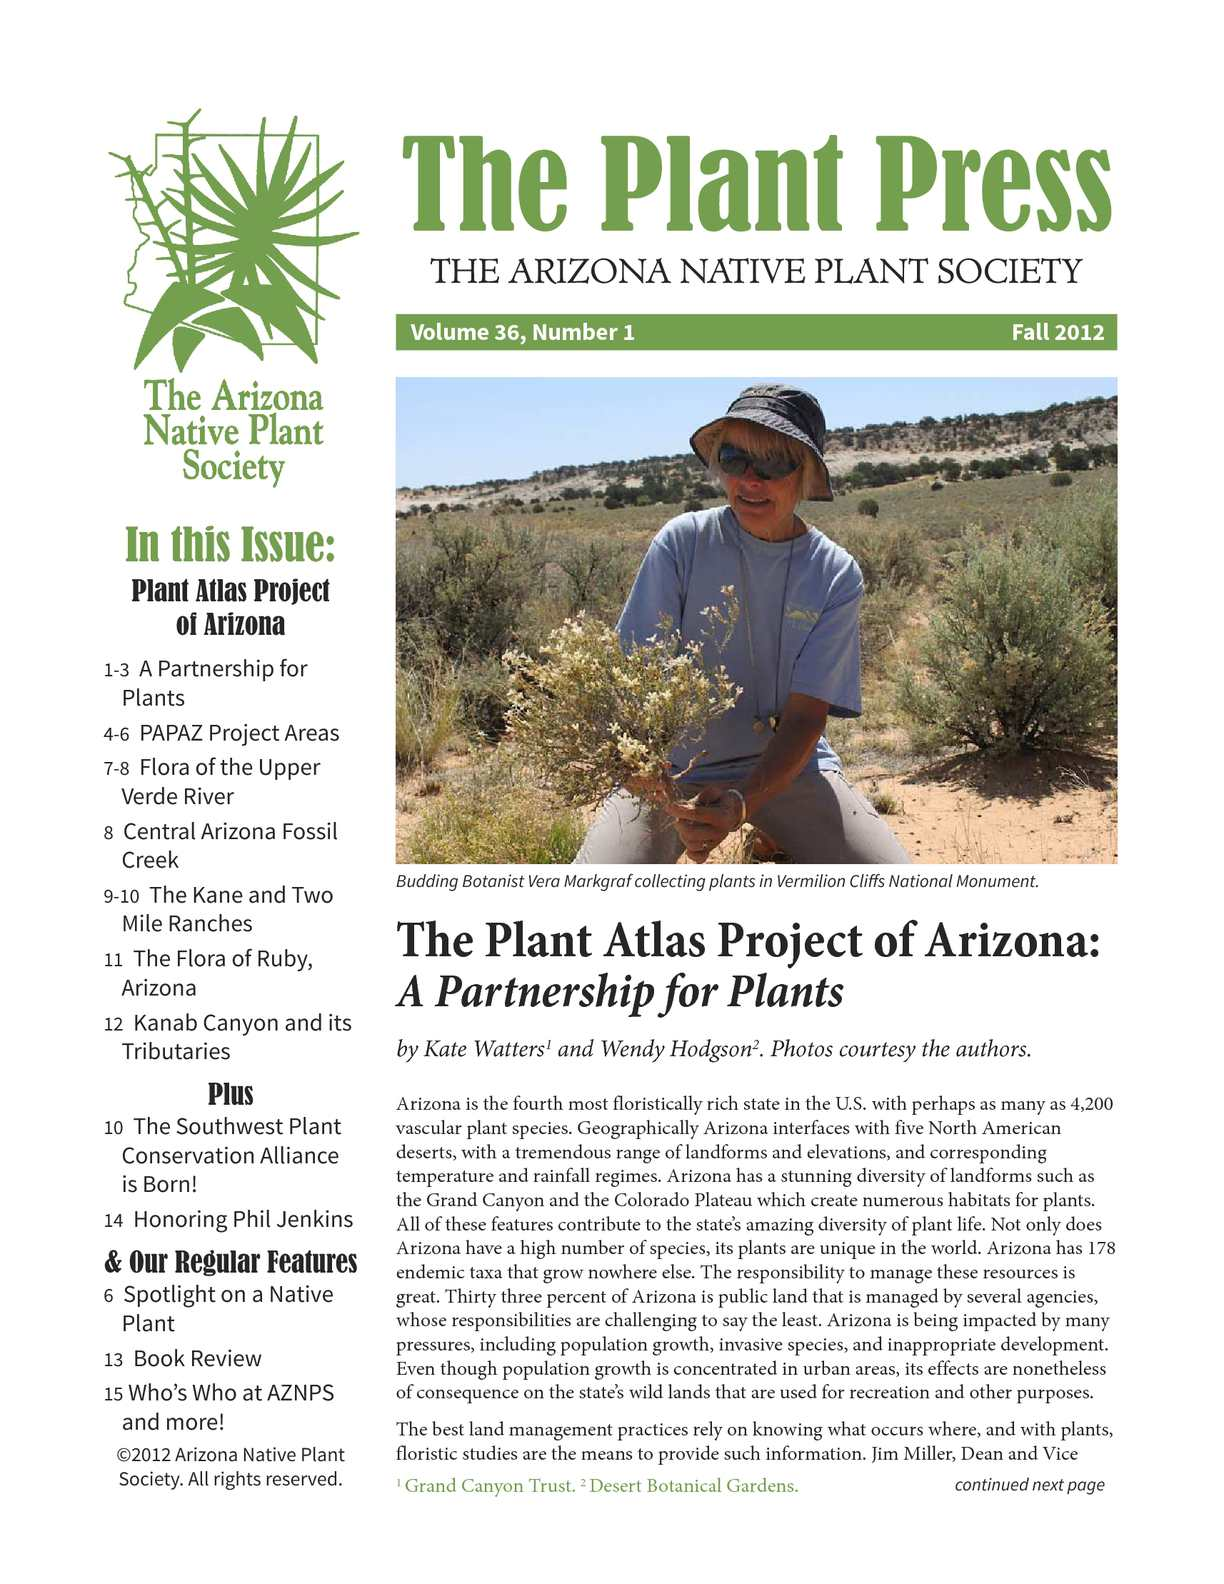 Calameo Fall 2012 The Plant Press Arizona Natiave Plant Soceity